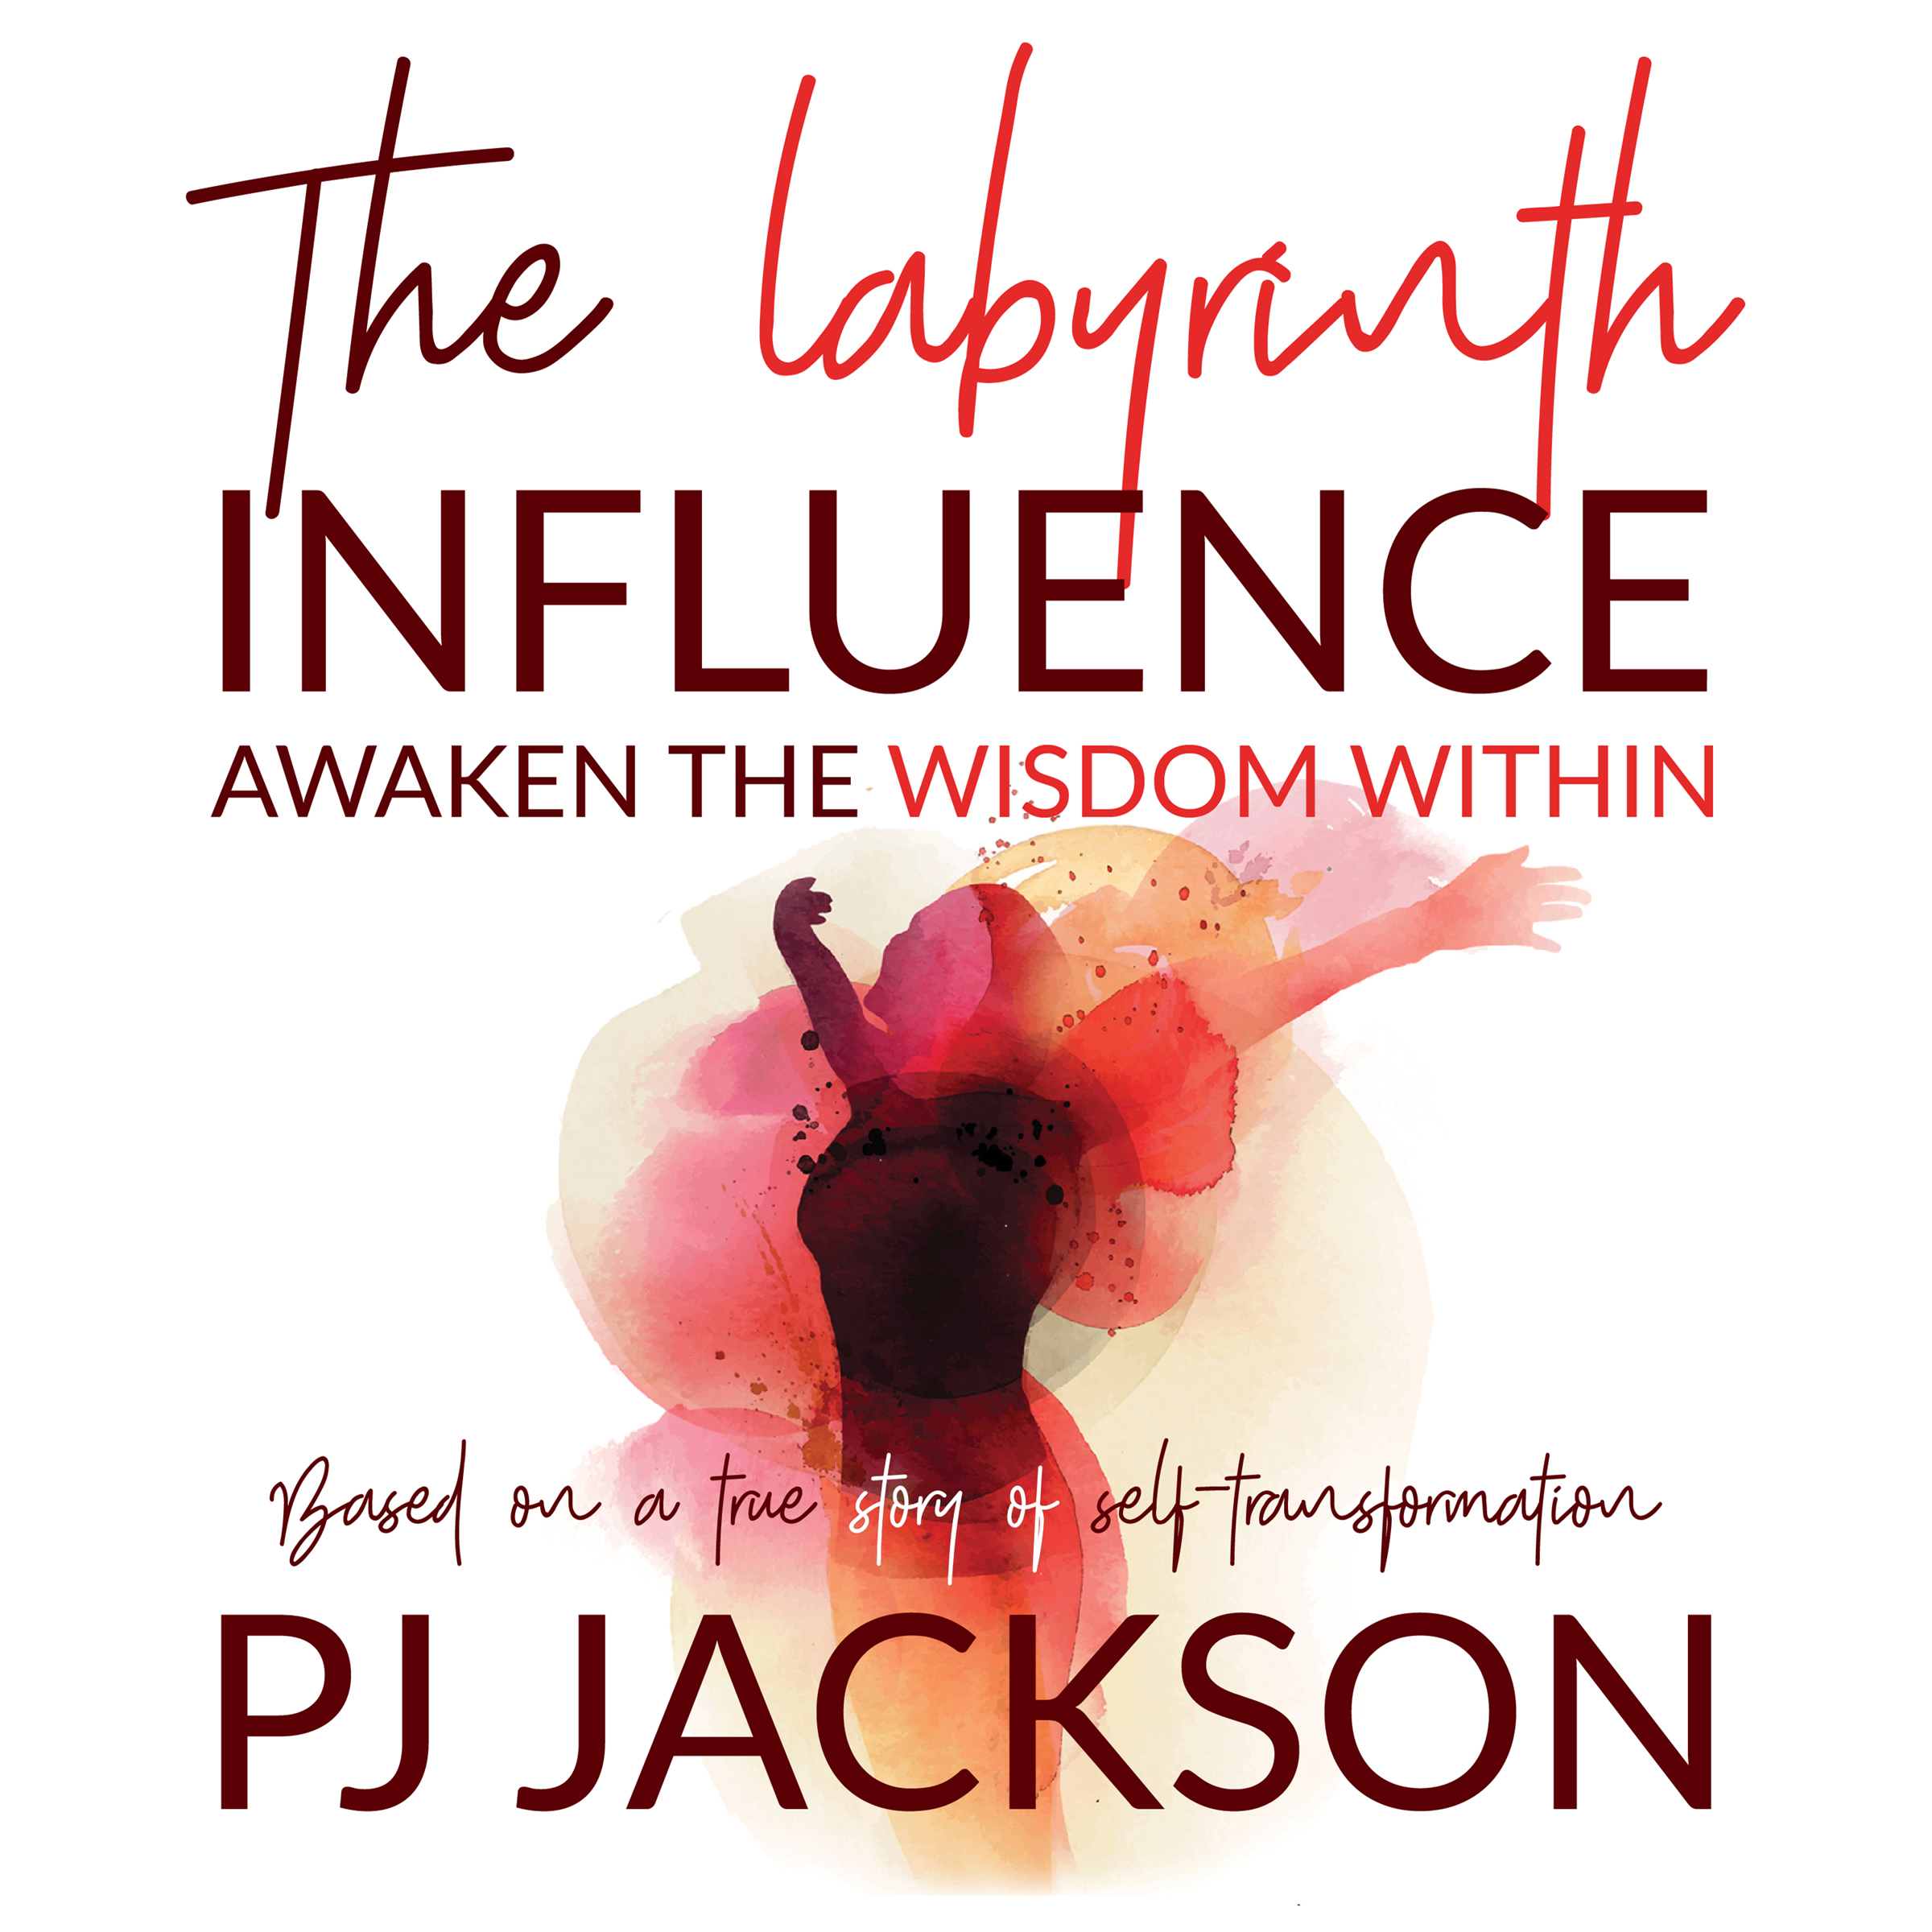 The Labyrinth Influence